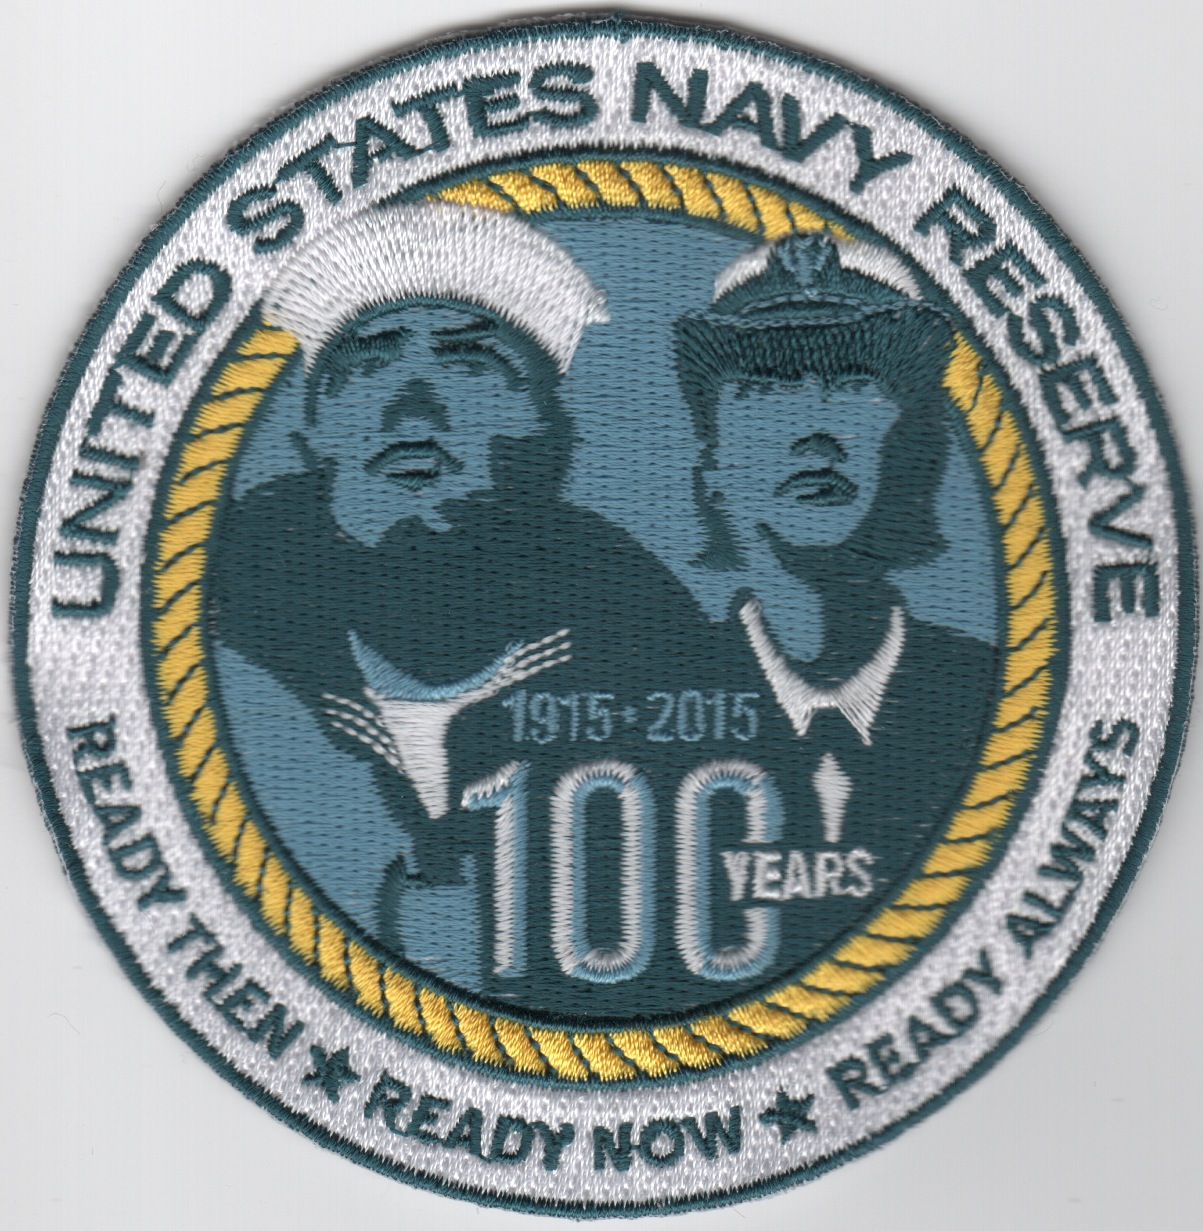 Naval Air Reserve 100th Anniversary (Round)